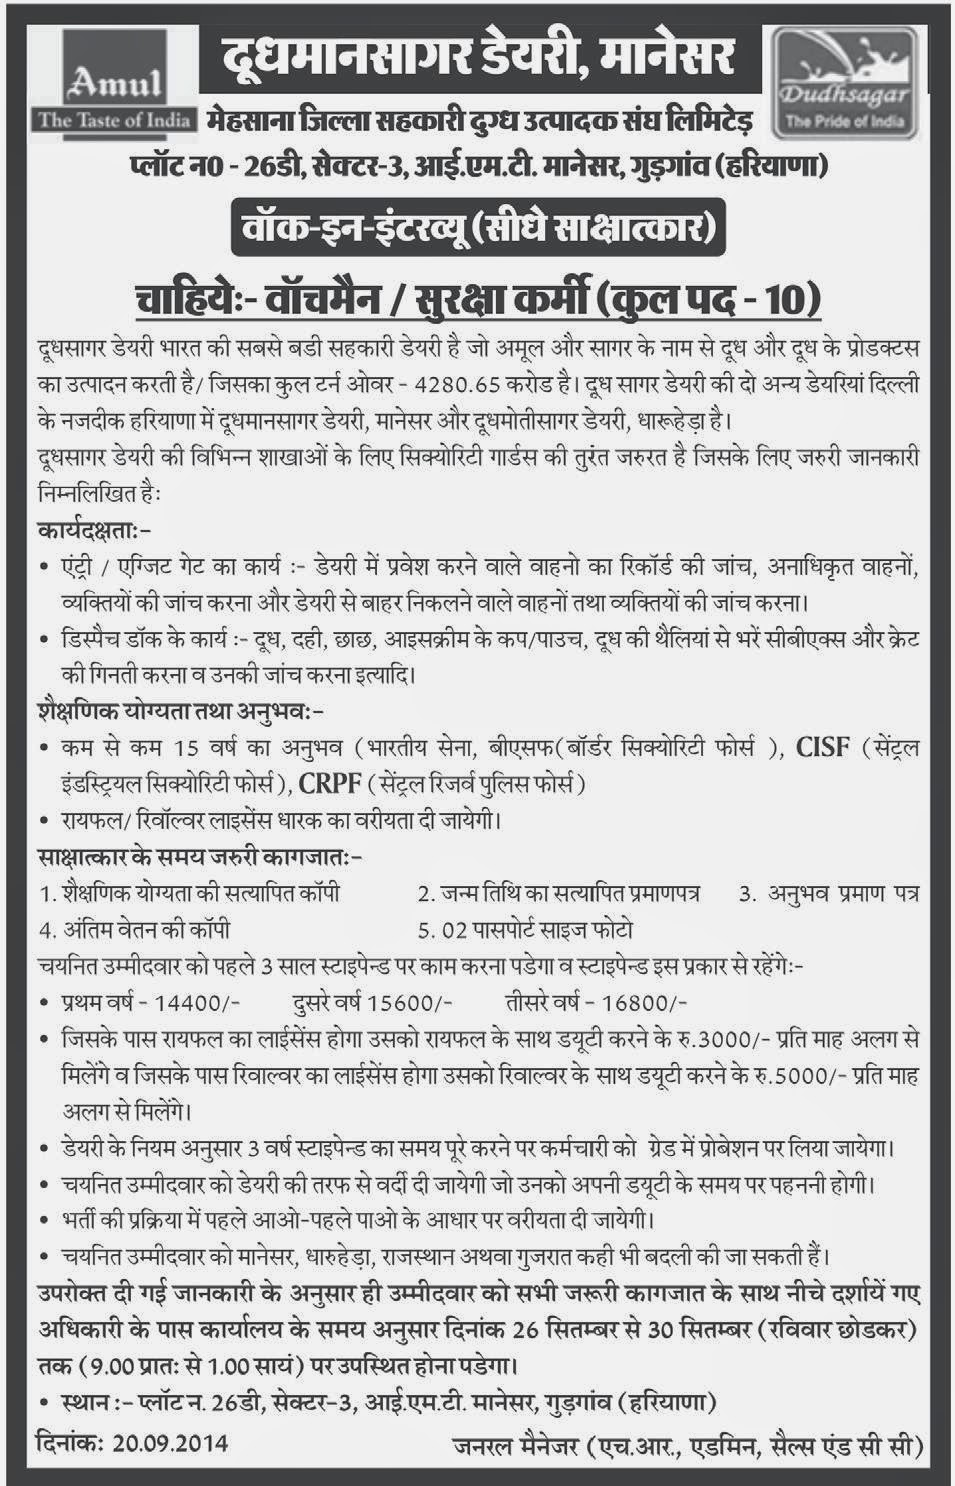 dudhmansagar dairy manesar watchman security guard recruitment uniform is compulsory at the time of duty area of job manesar dharuhera rajasthan and gujarat walk in interview 26 to 30 2014 except sunday